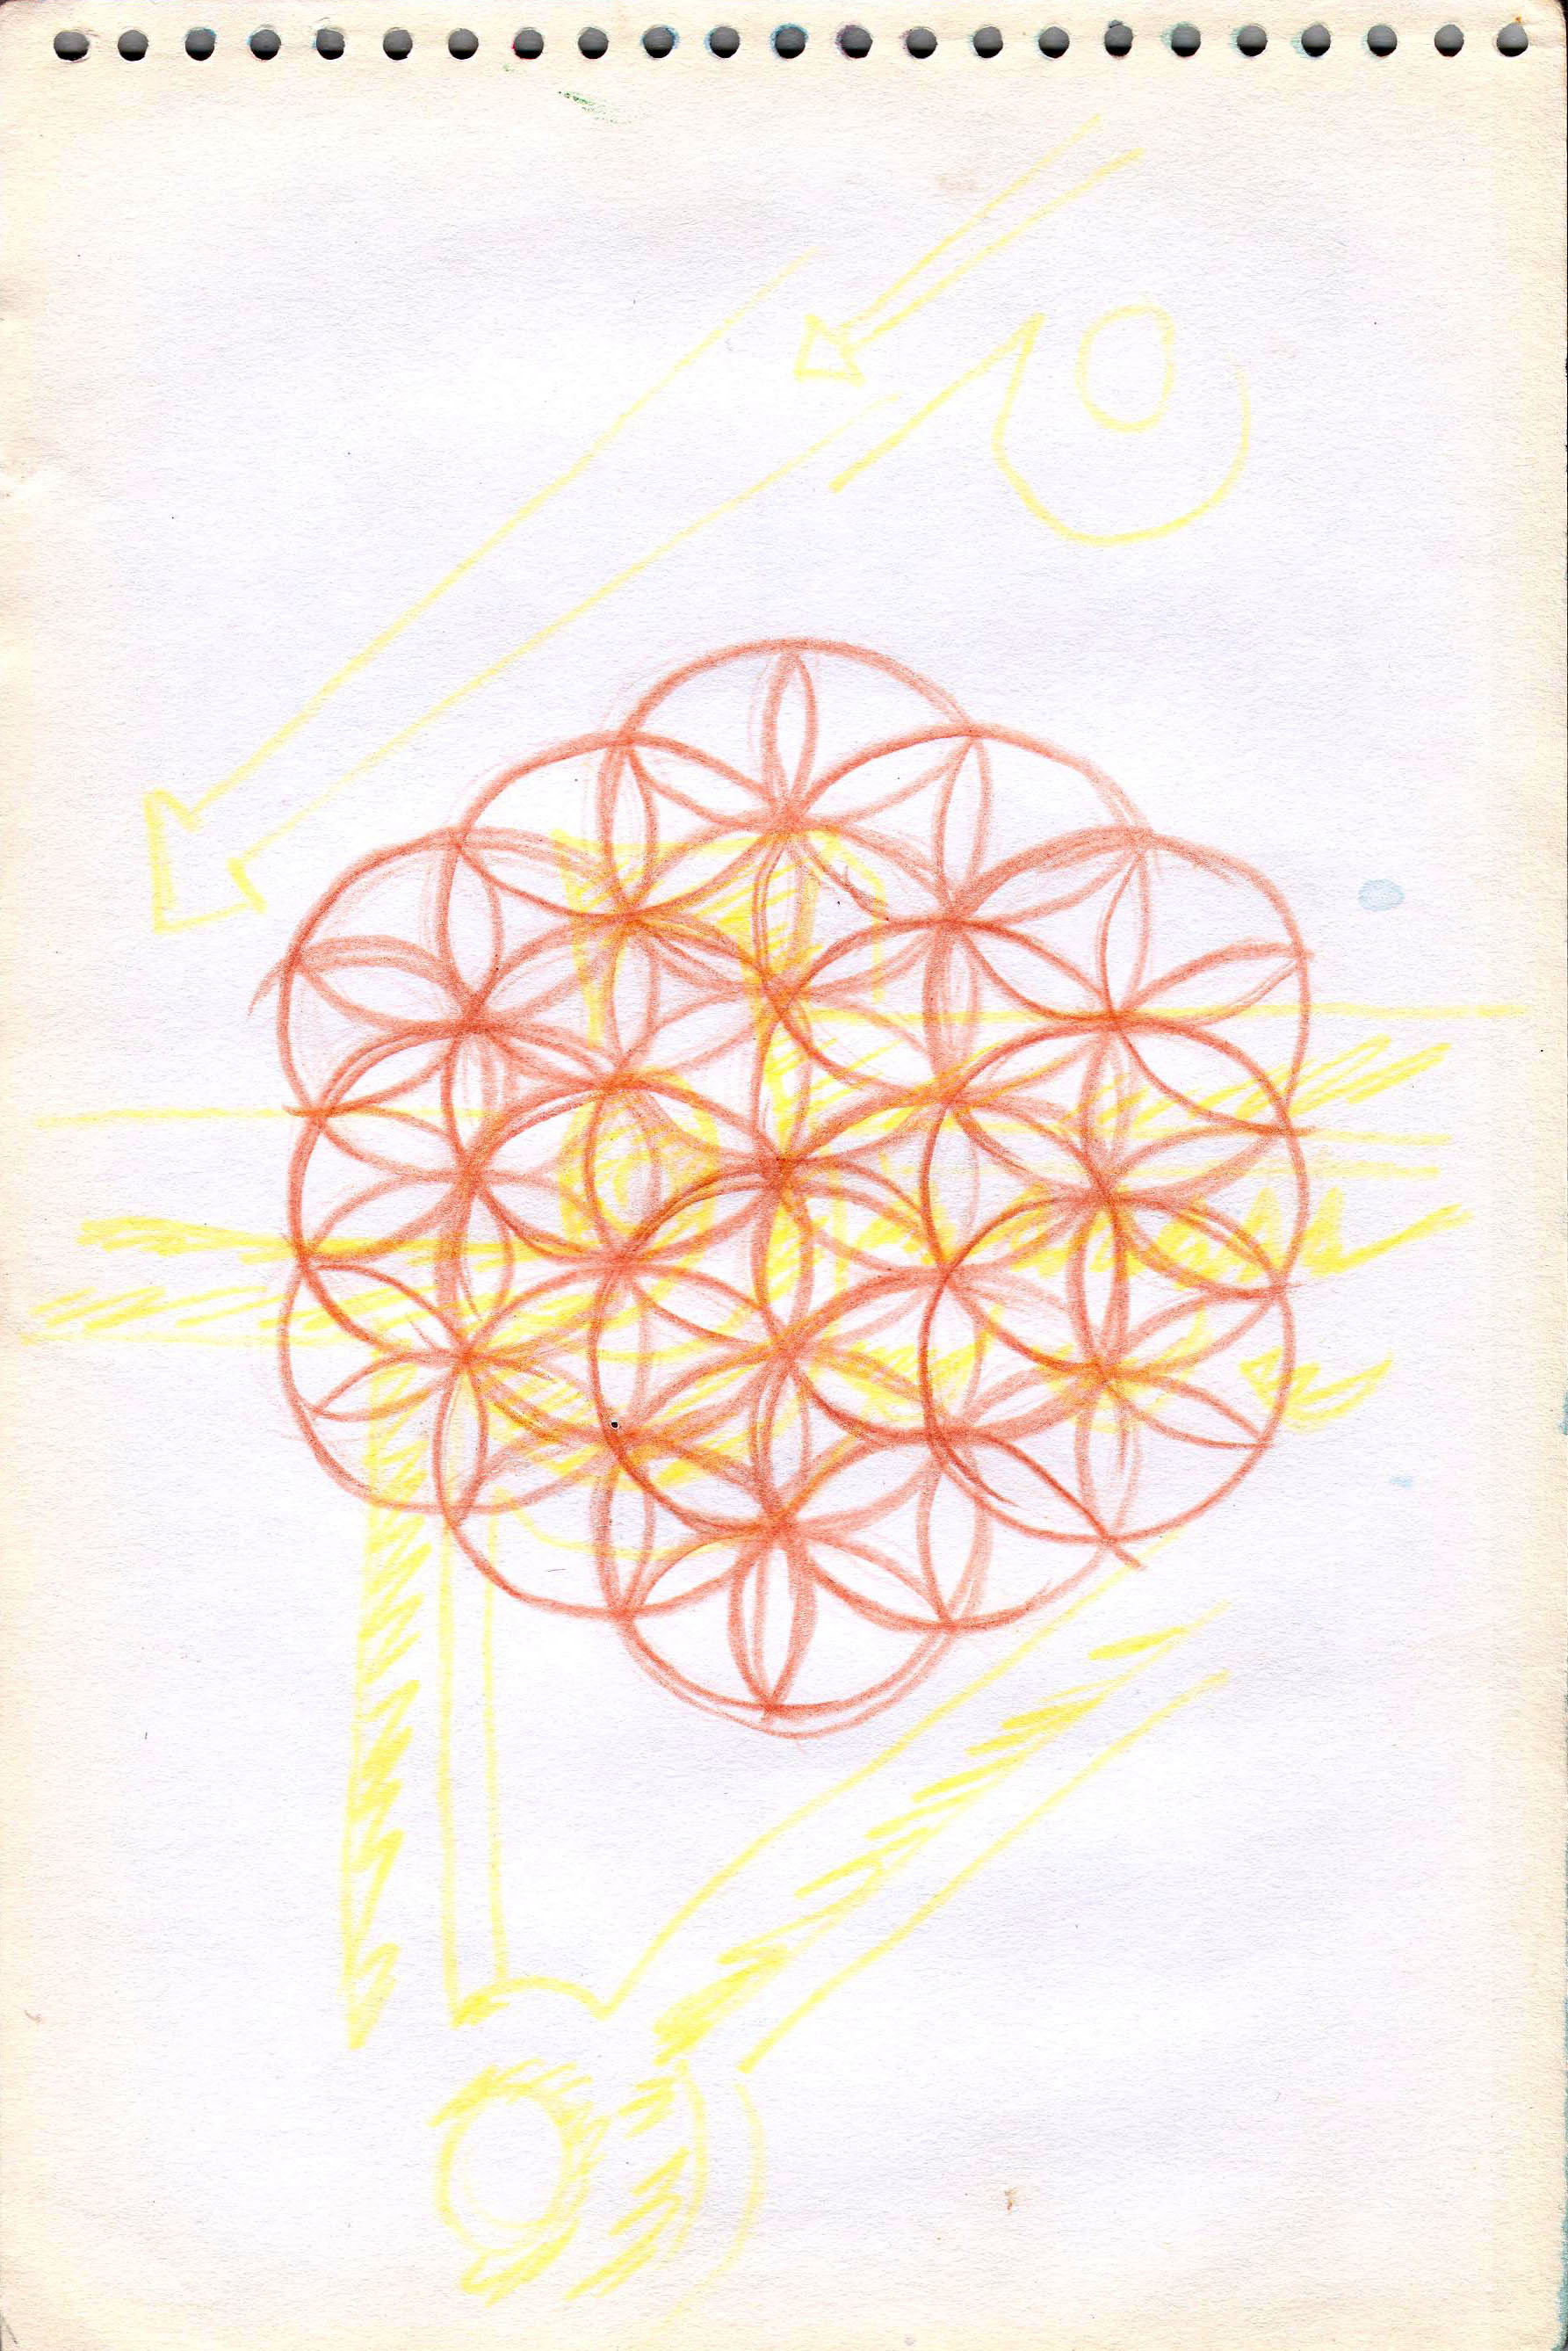 Sketches from the source by a Philippine shaman Bong Delatorre 16